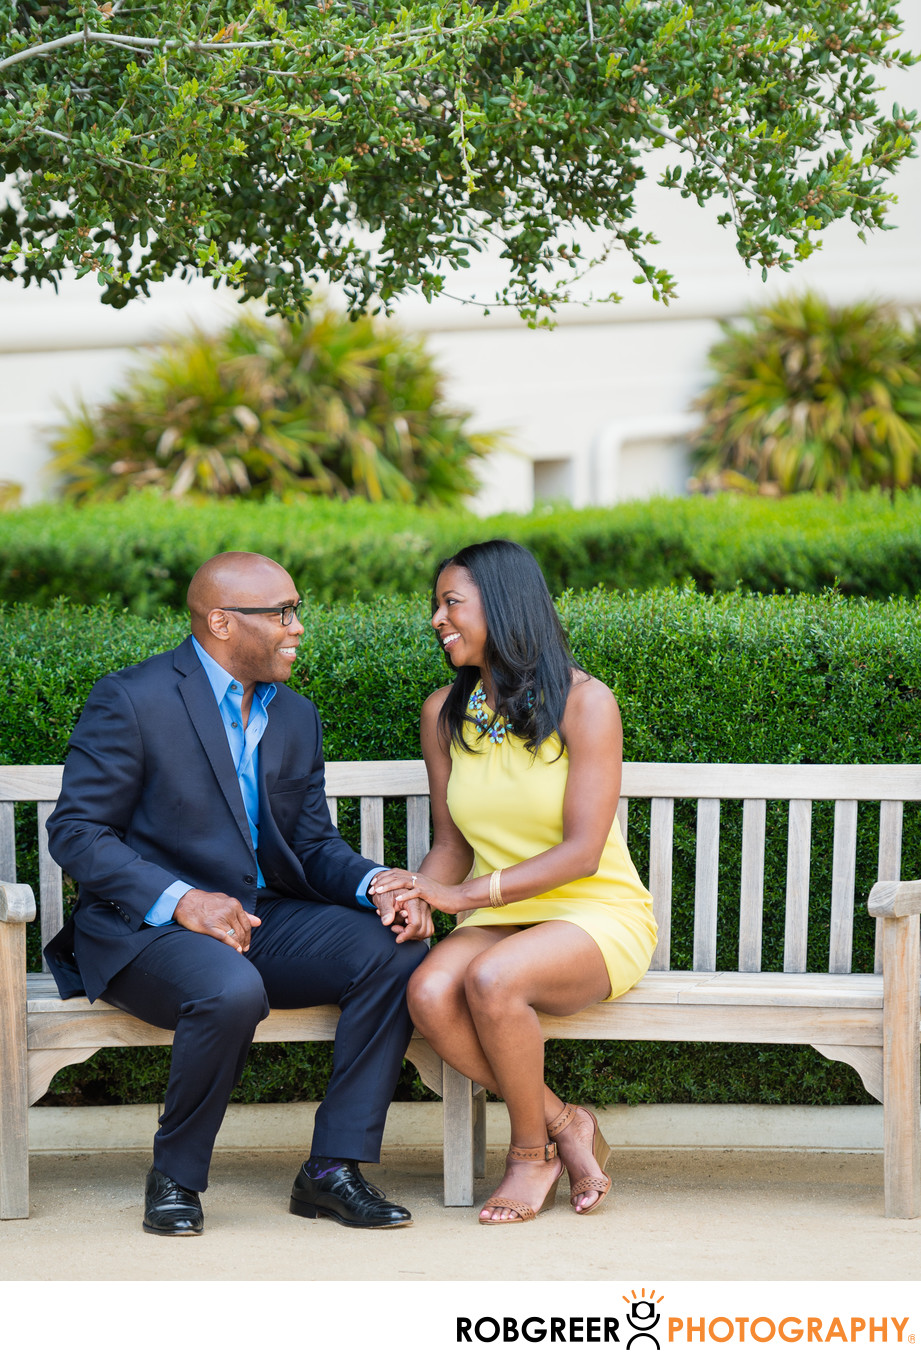 Park Engagement Photography